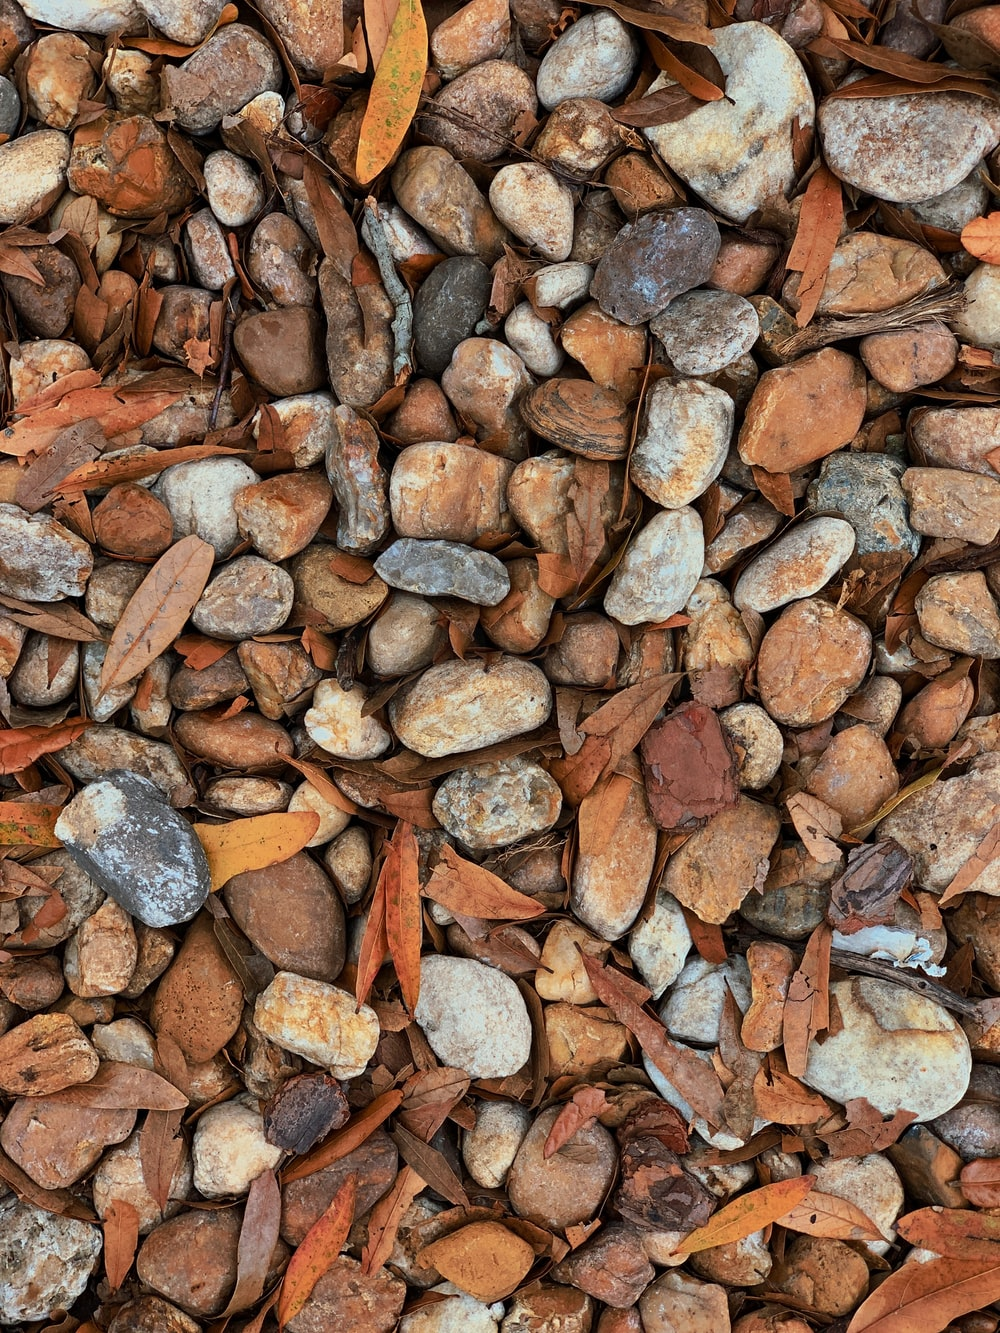 brown and gray stone fragments